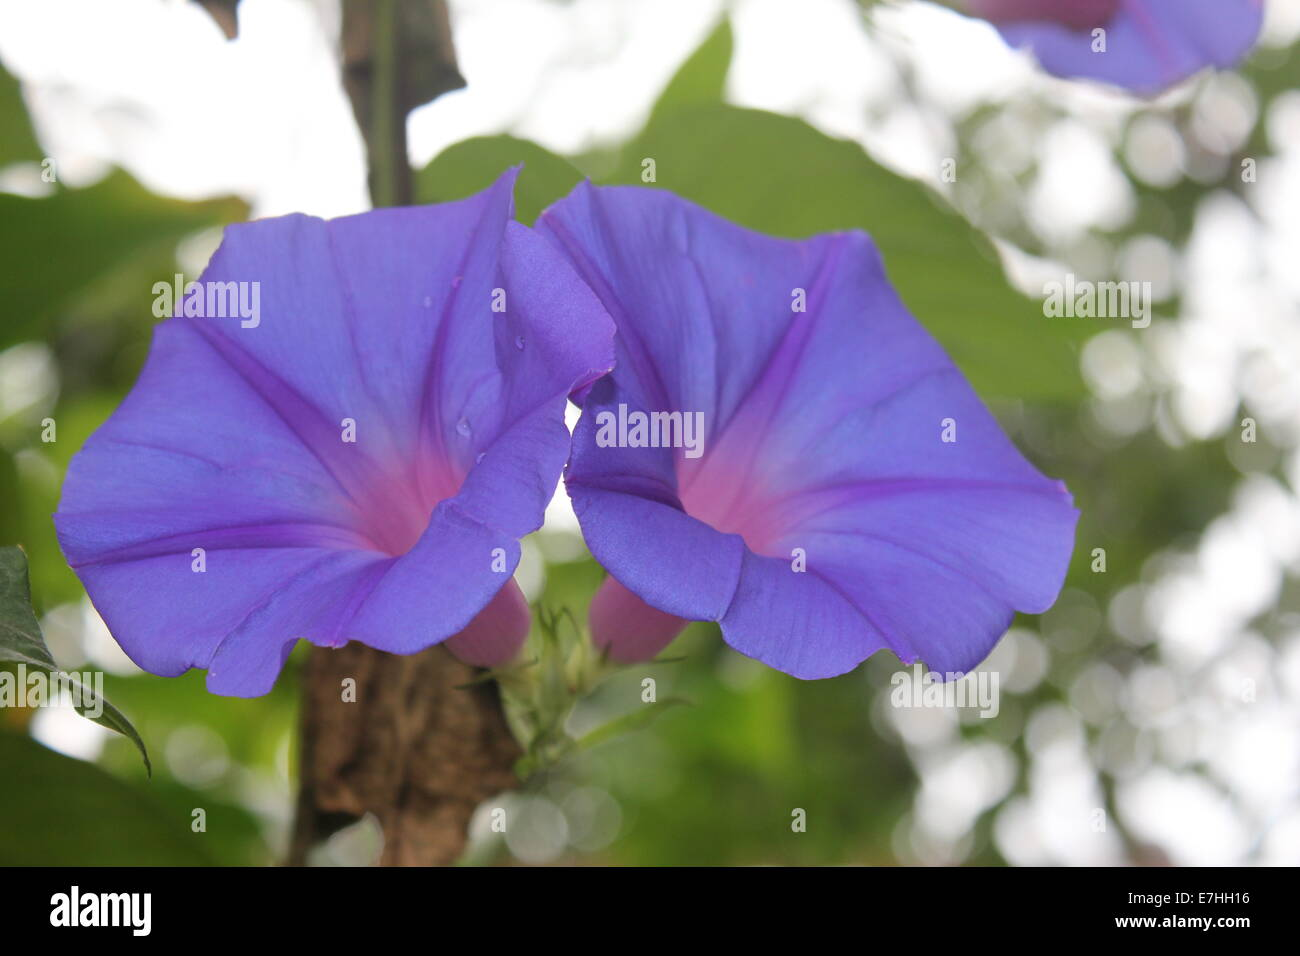 Purple Bell Shaped Flowers Stock Photos Purple Bell Shaped Flowers